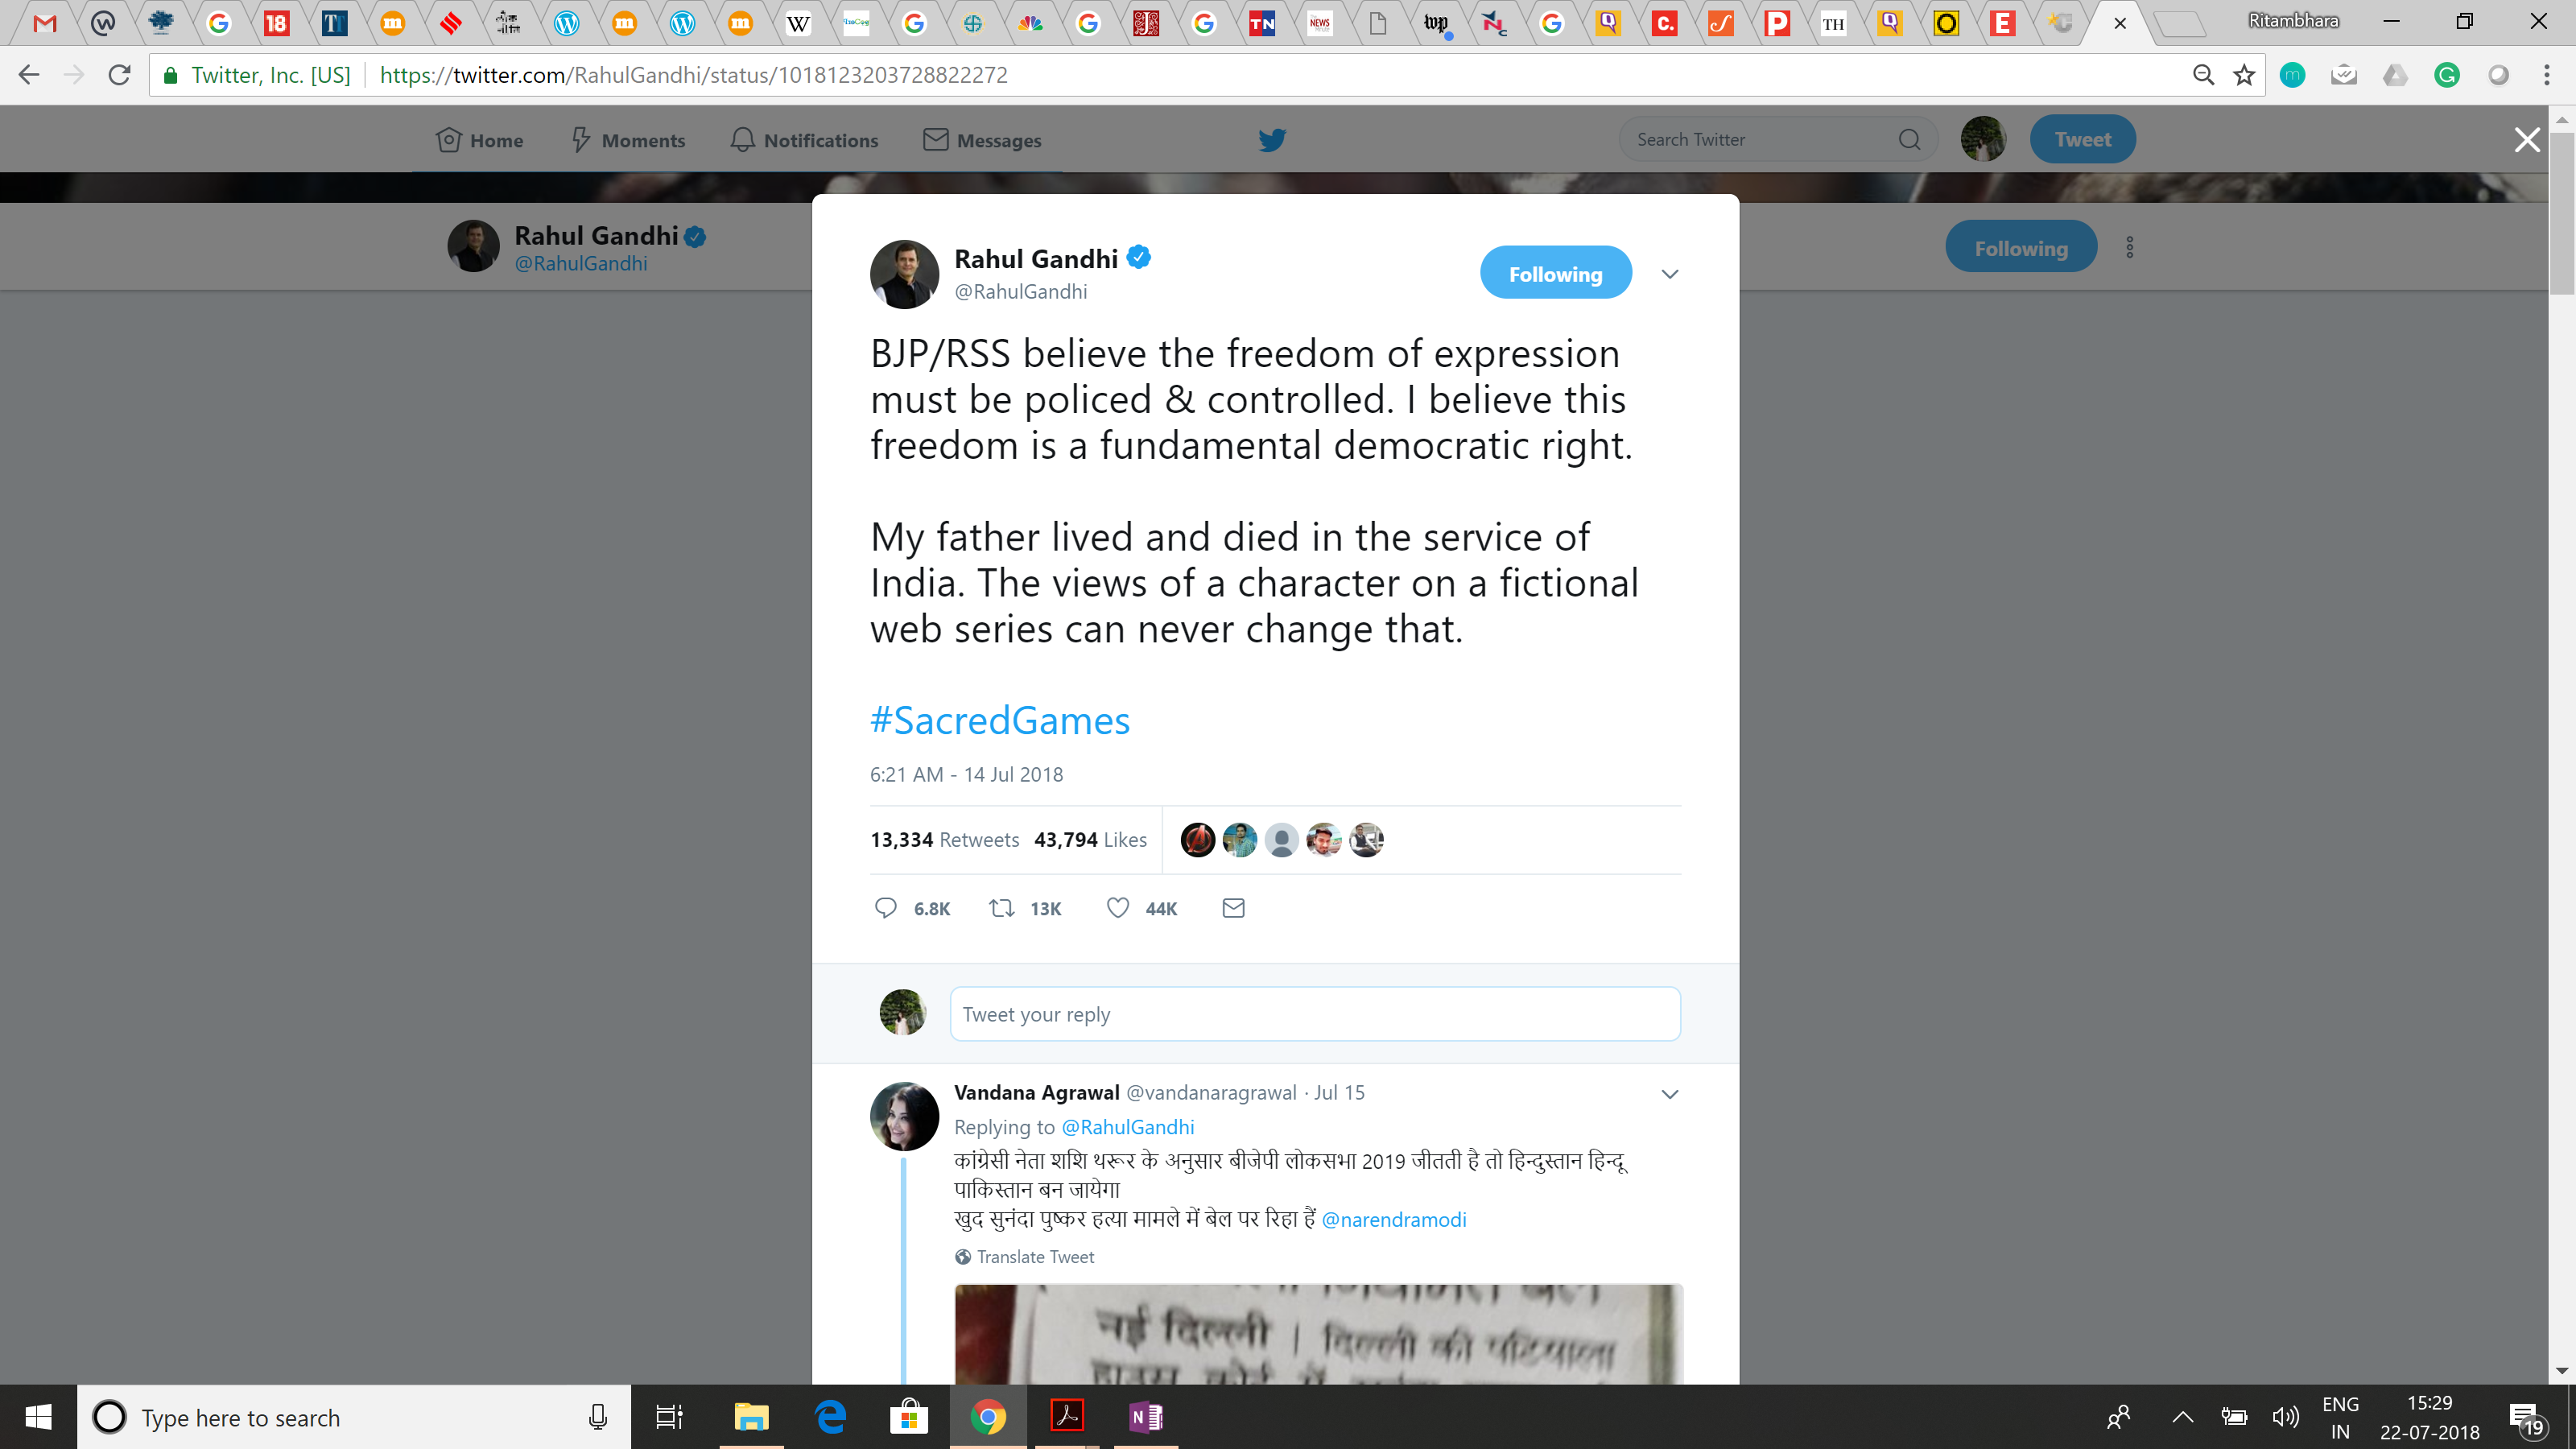 Rahul Gandhi's tweet on Sacred Games